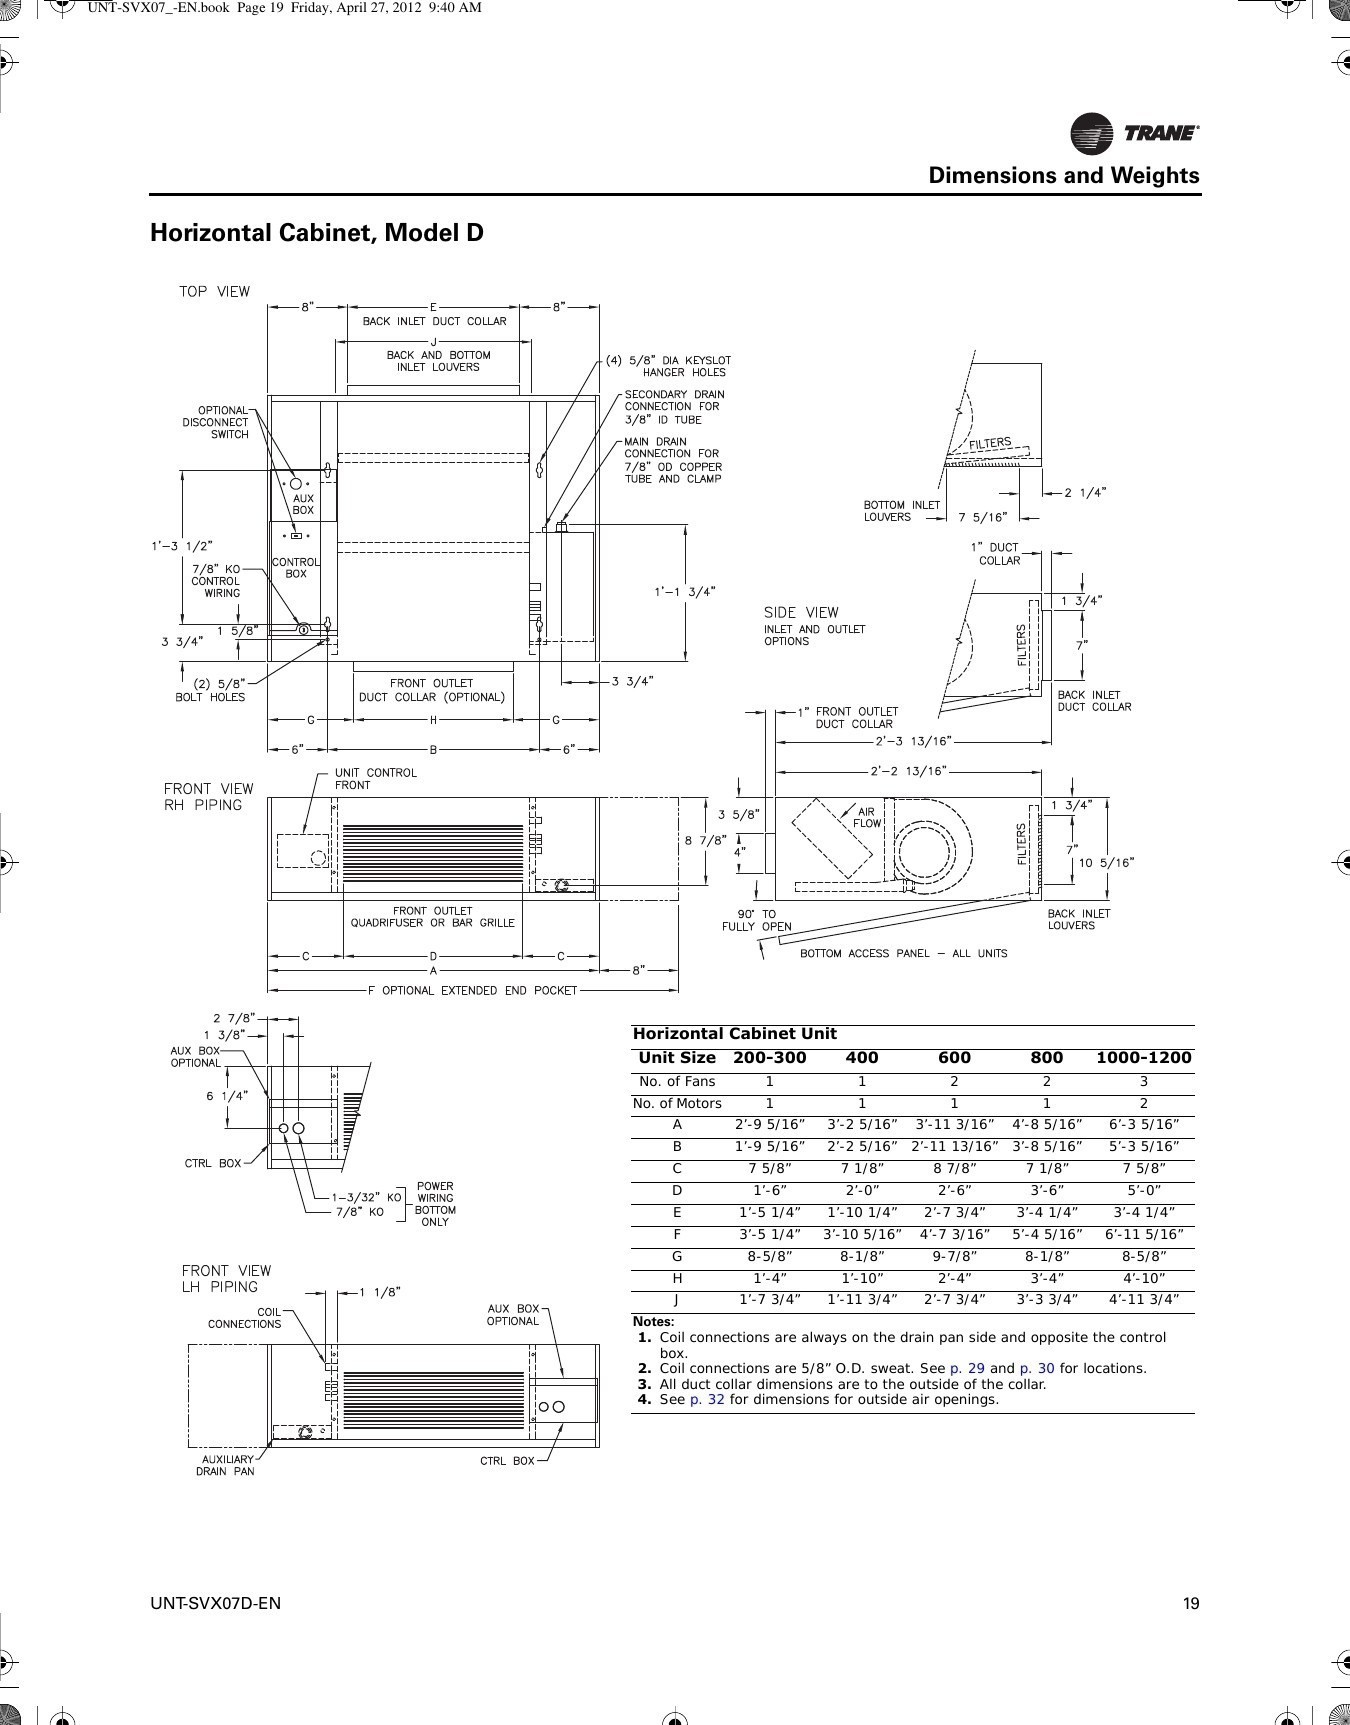 Wiring Diagram for Kib Mv22vwl Kib Systems Monitor Panel Schematic Best Of Wiring Diagram for Kib Mv22vwl